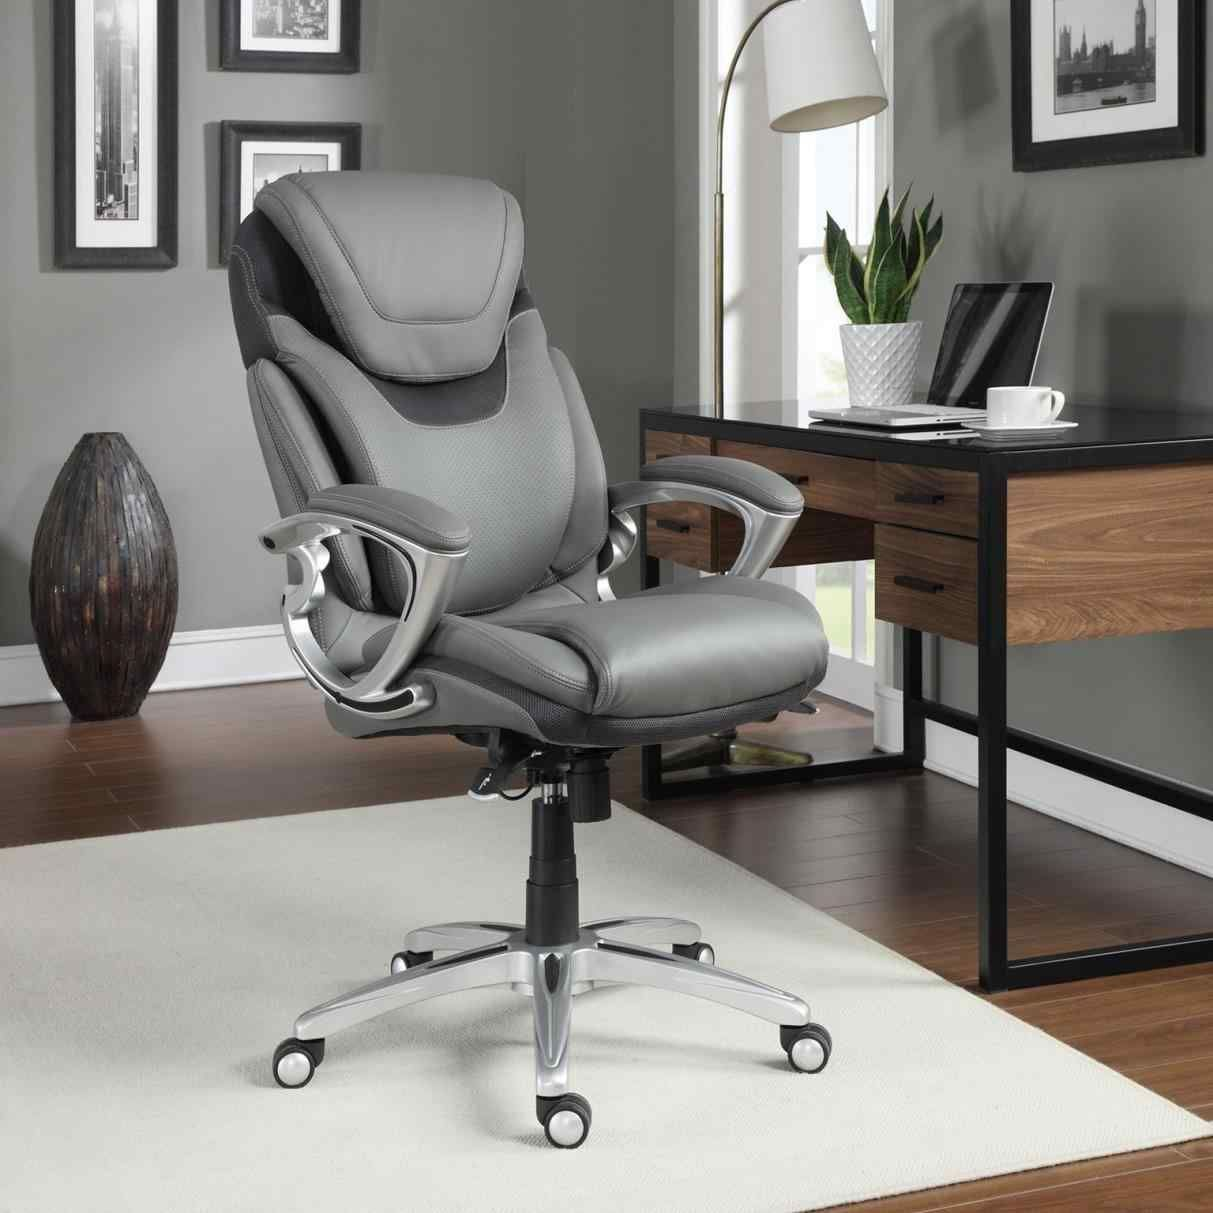 Inspiring 20 Collection Of Most Comfortable Chair Designs For Sitting Work Positions Https